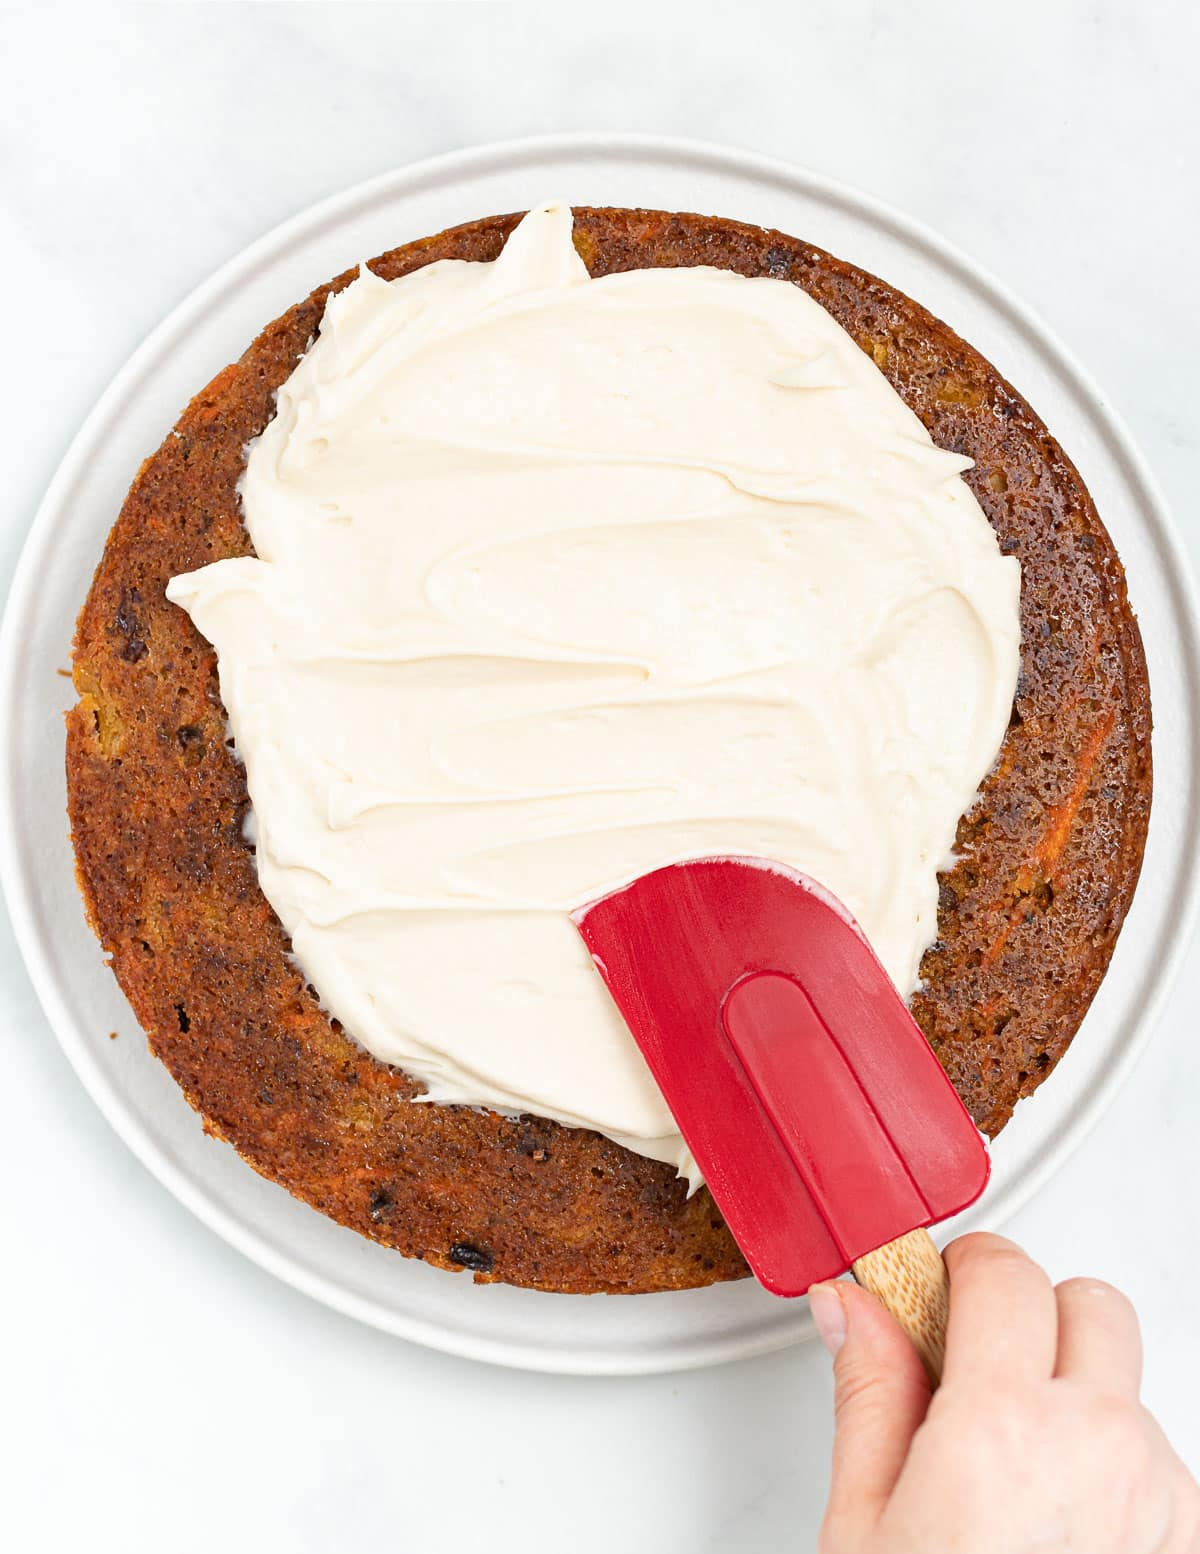 vegan cream cheese being spread on a cake layer with a red spatula